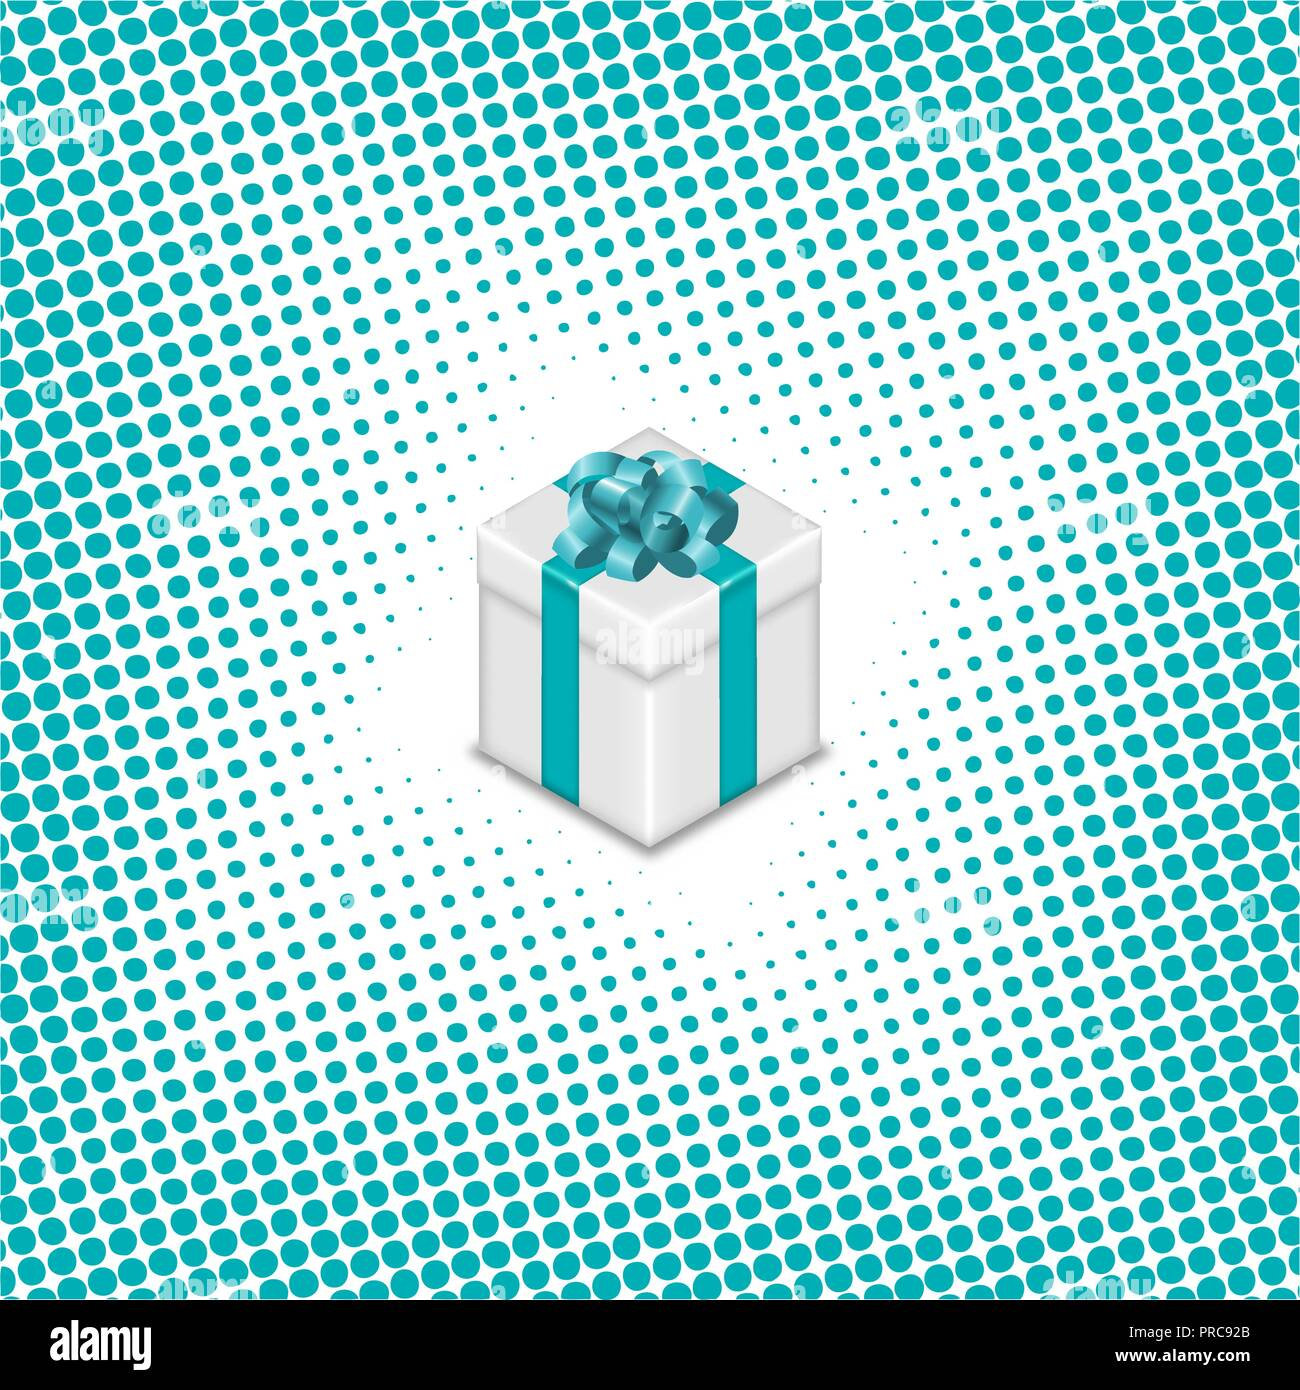 Gift box with ribbon and bow on halftone background, vector illustration. - Stock Image